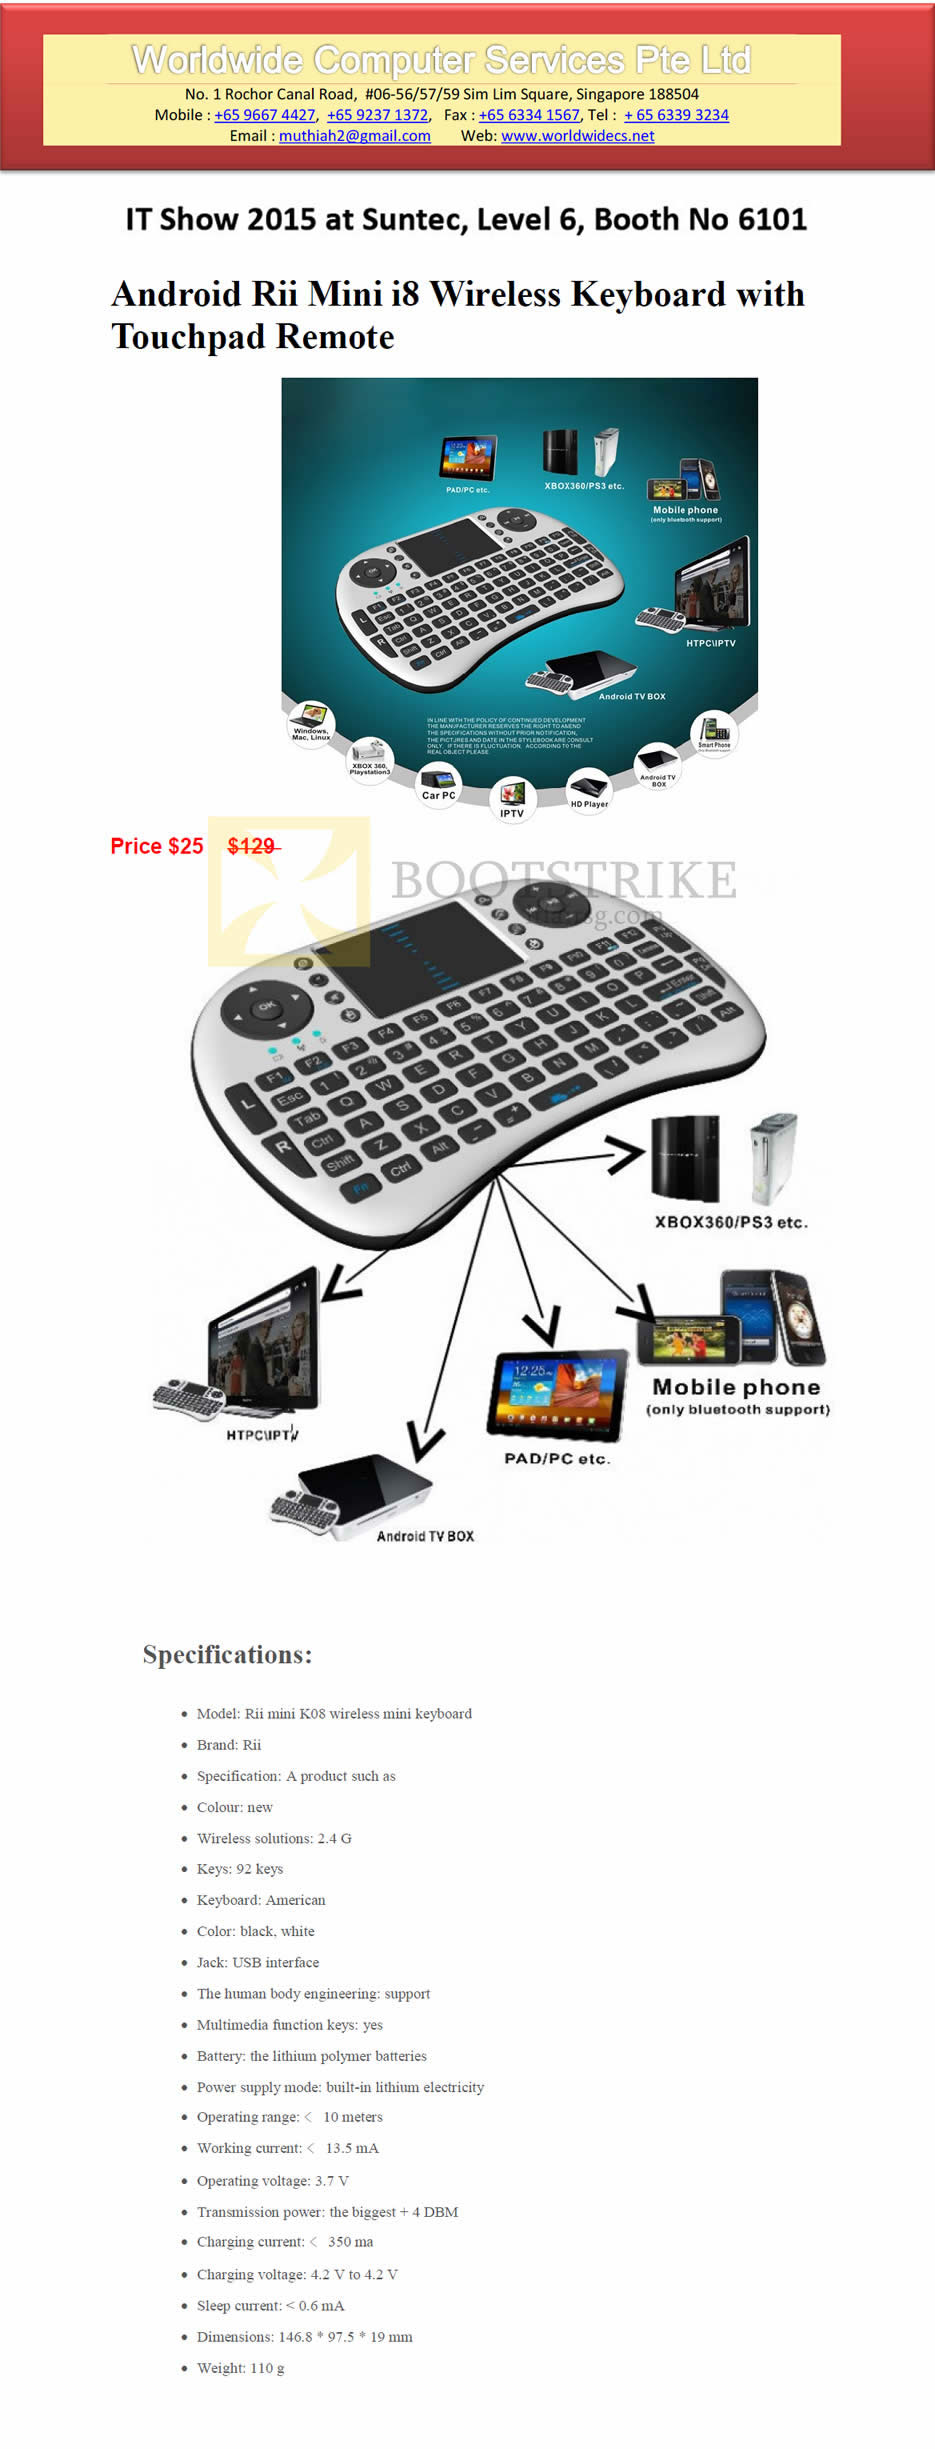 IT SHOW 2015 price list image brochure of Worldwide Computer Services Android Rii Mini Wireless Mini Keyboard